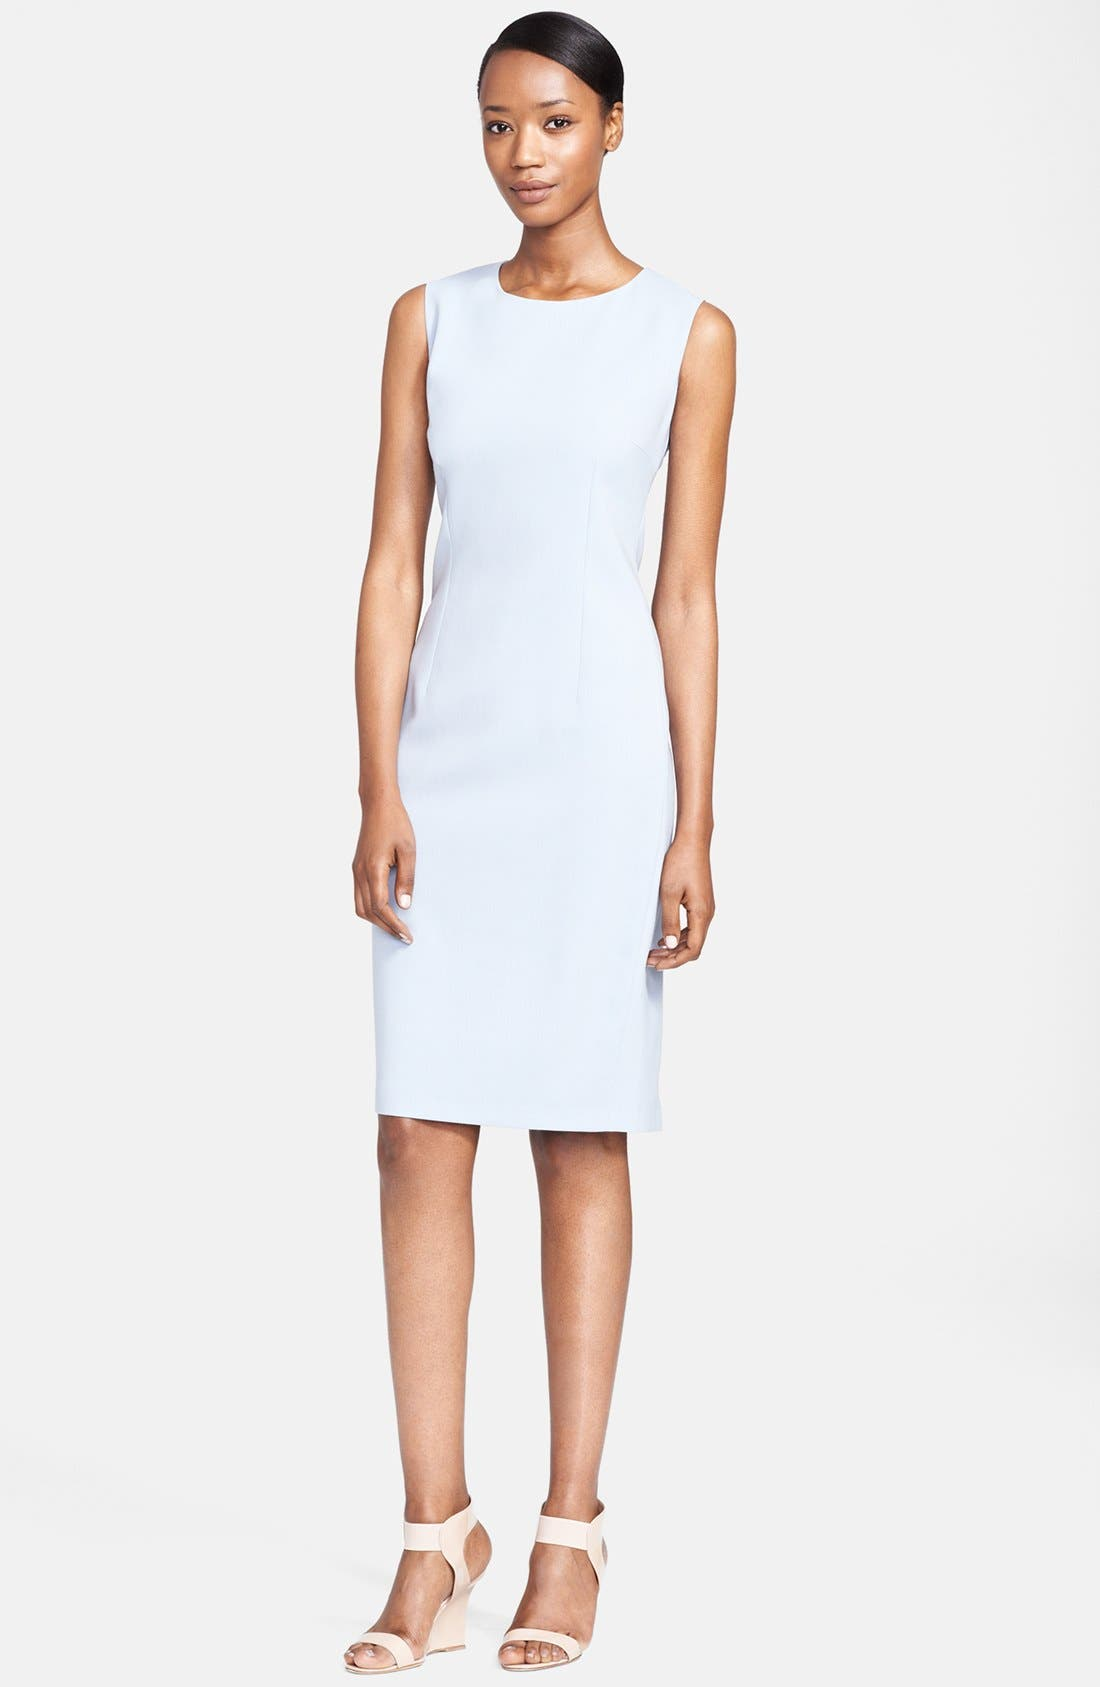 Alternate Image 1 Selected - Max Mara 'Pasta' Stretch Wool Sheath Dress